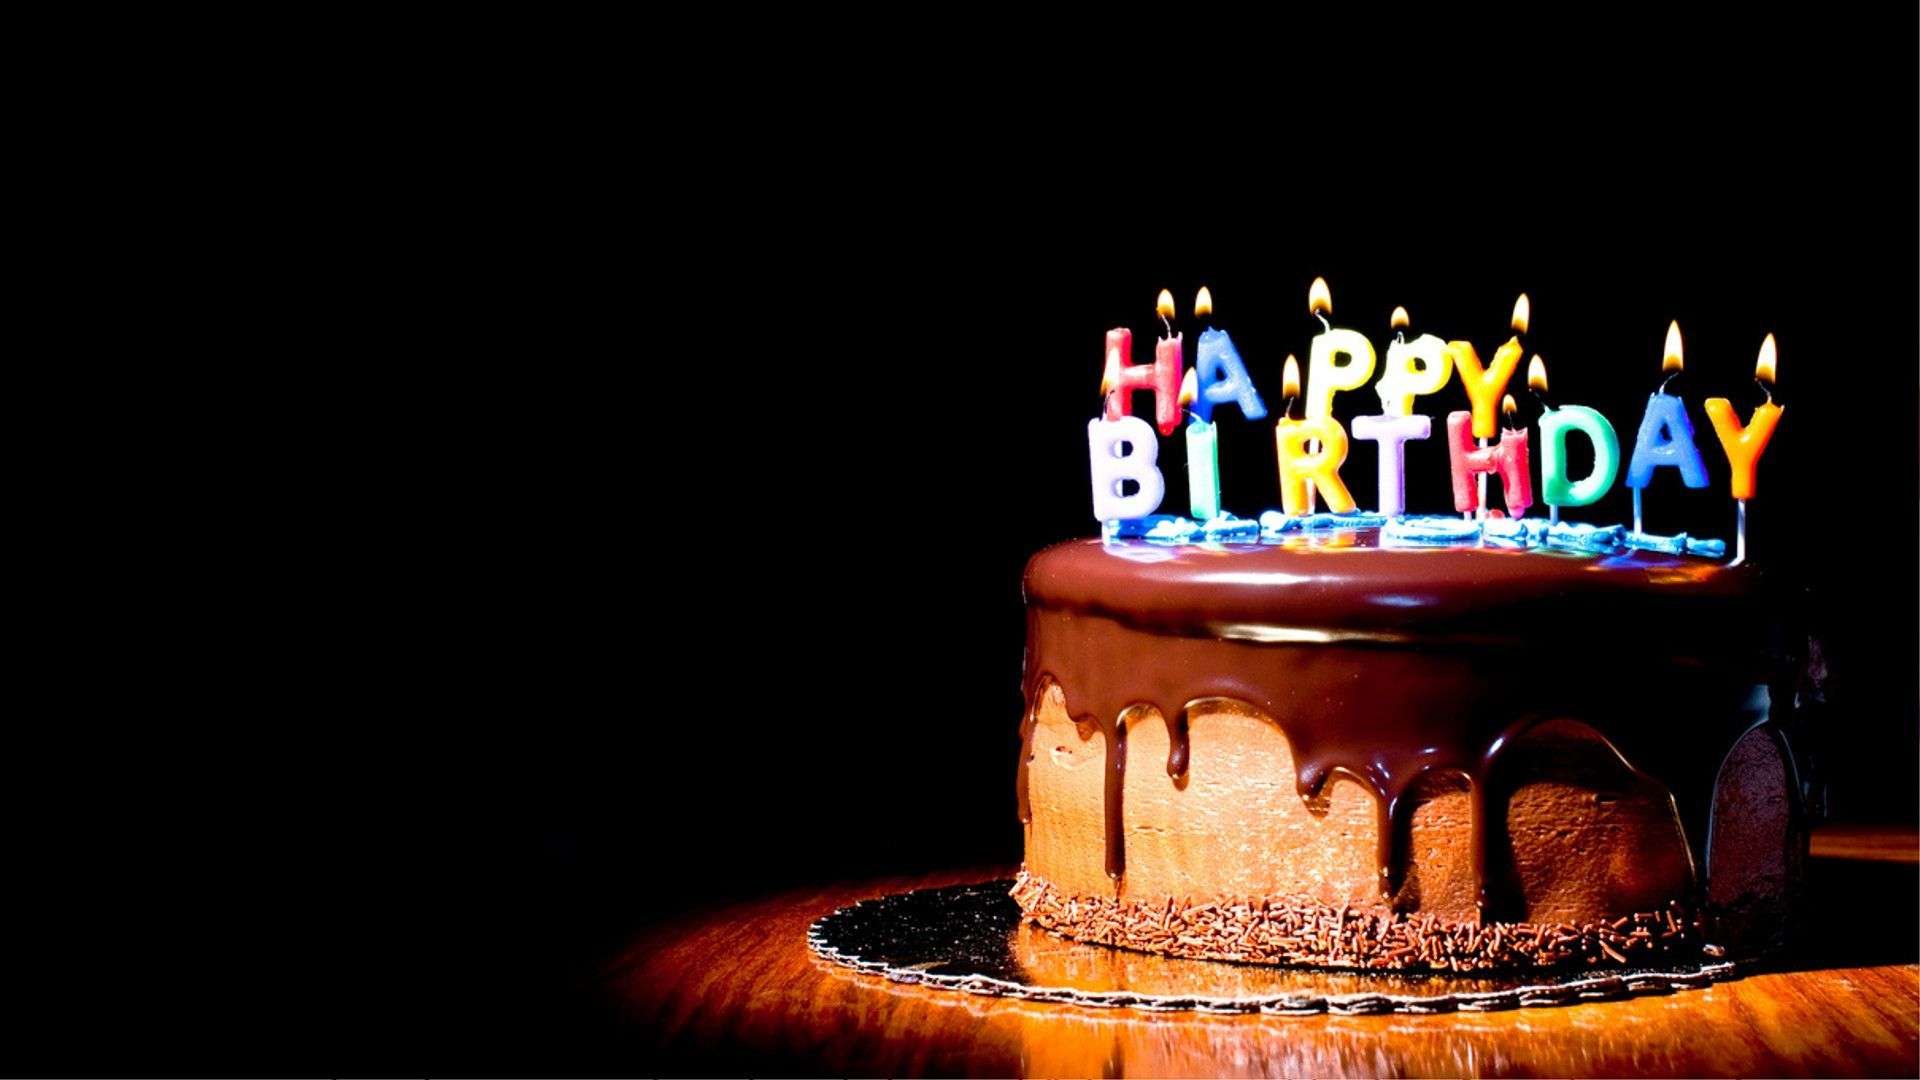 Birthday Cake Wallpaper HD